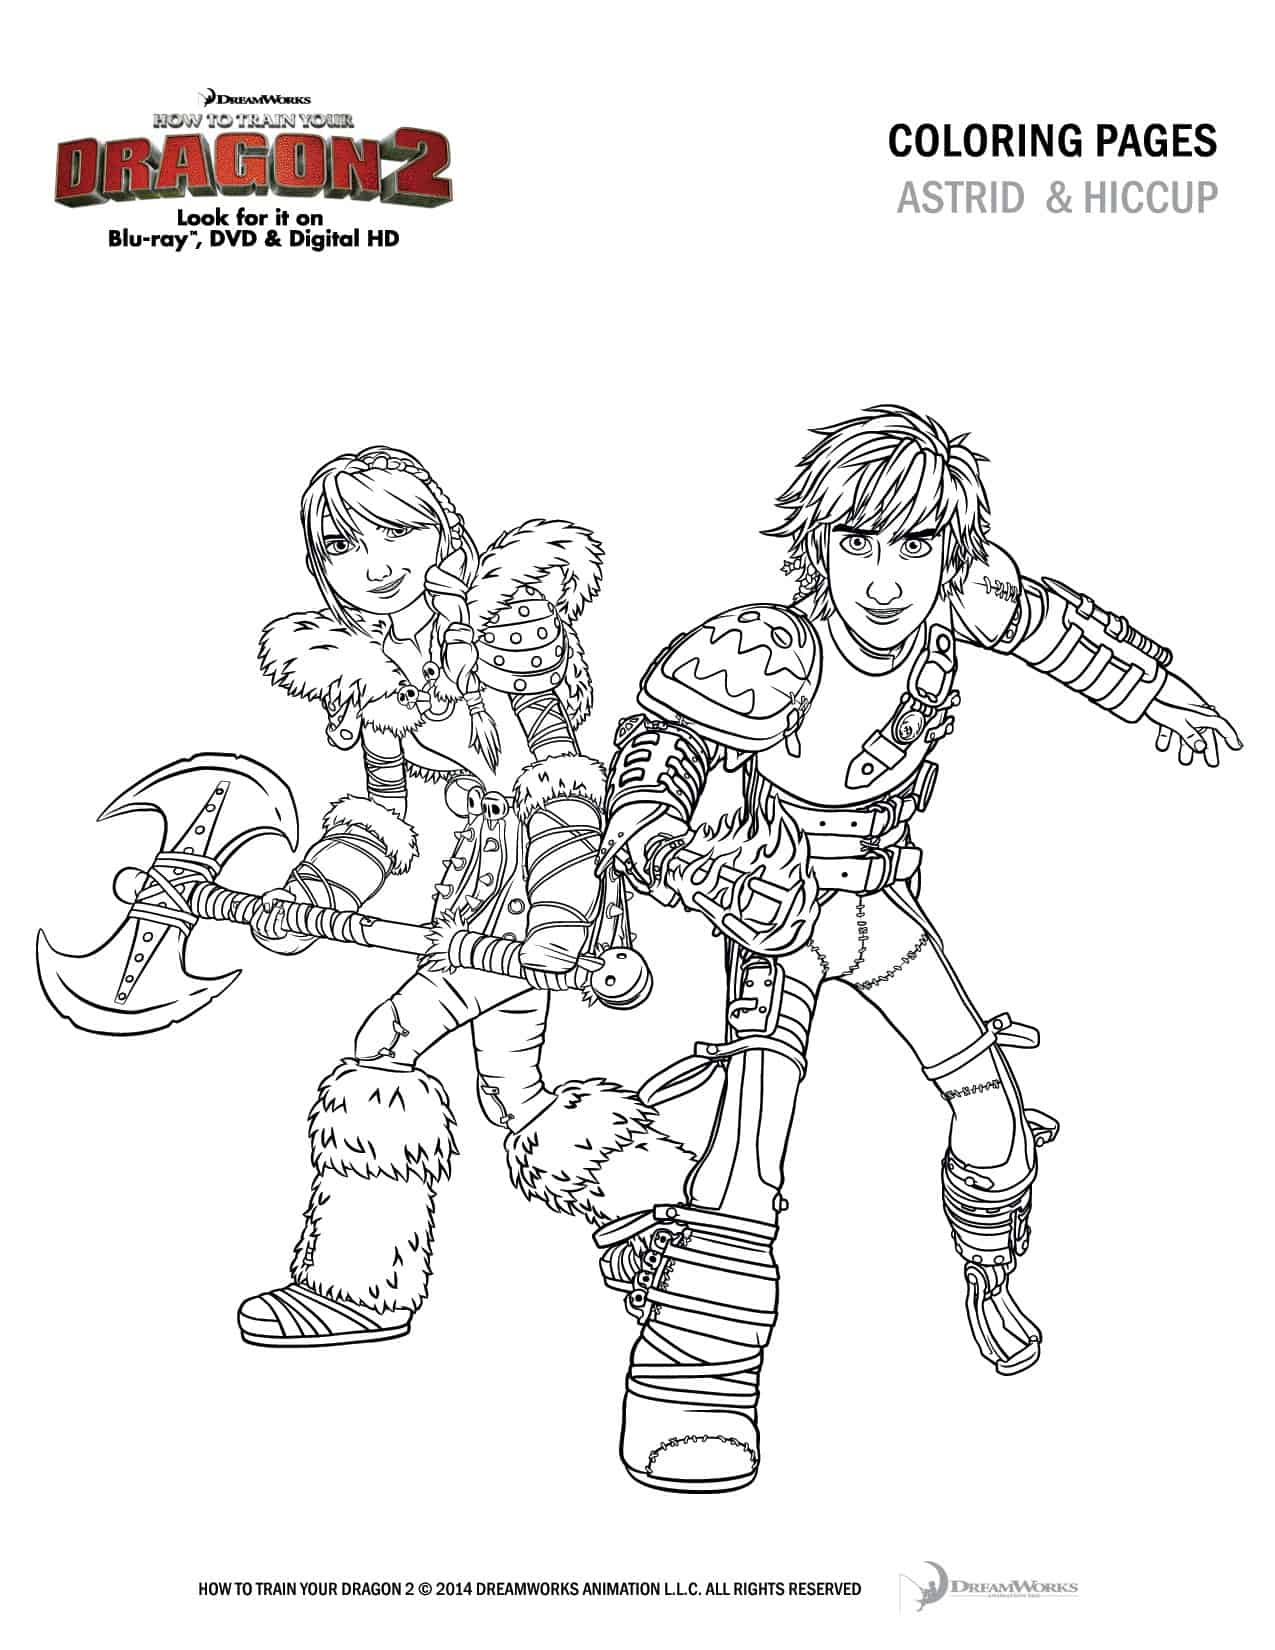 How To Train Your Dragon Coloring Pages Toothless How to train your dragon 2